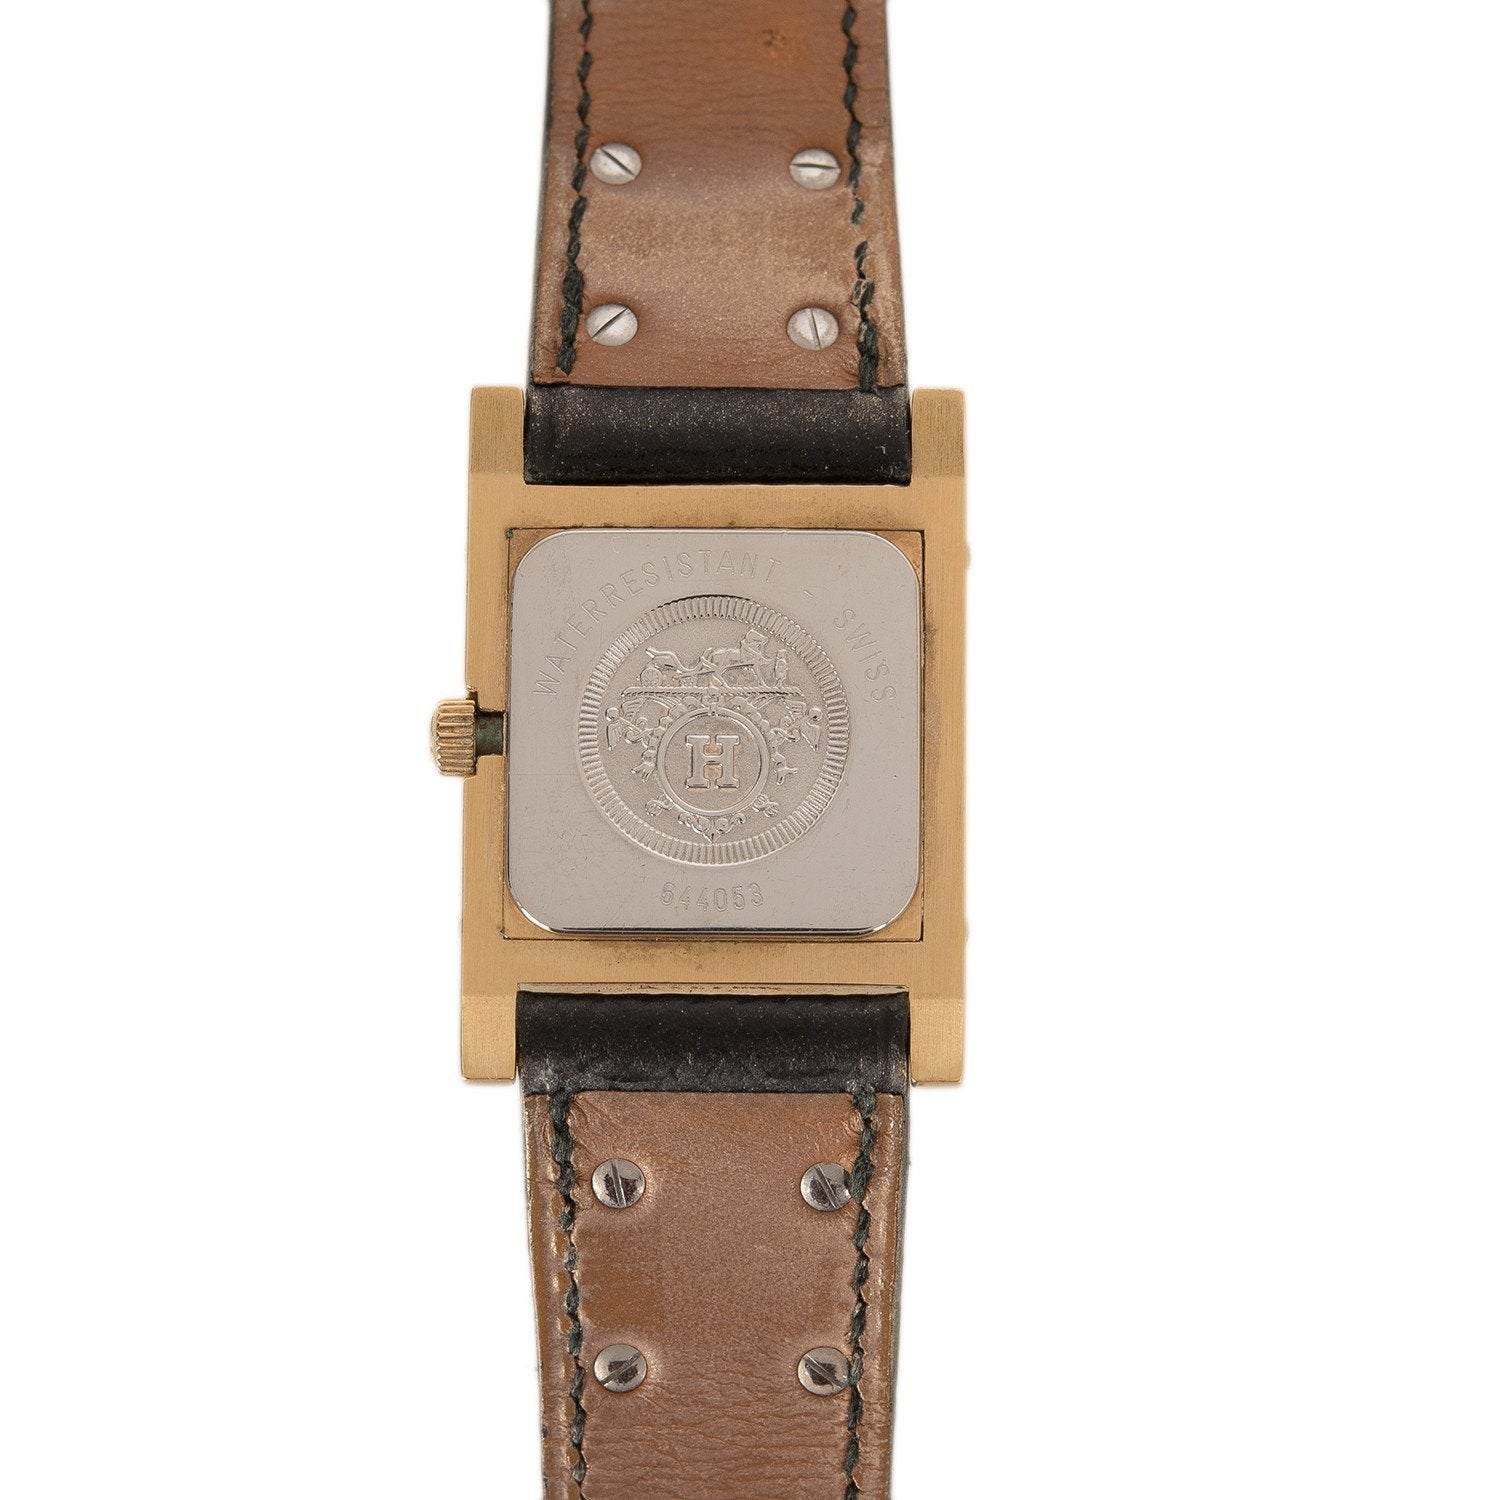 Hermes Medor Watch Pm Black Courchevel Leather Band Preloved Excellent Accessories